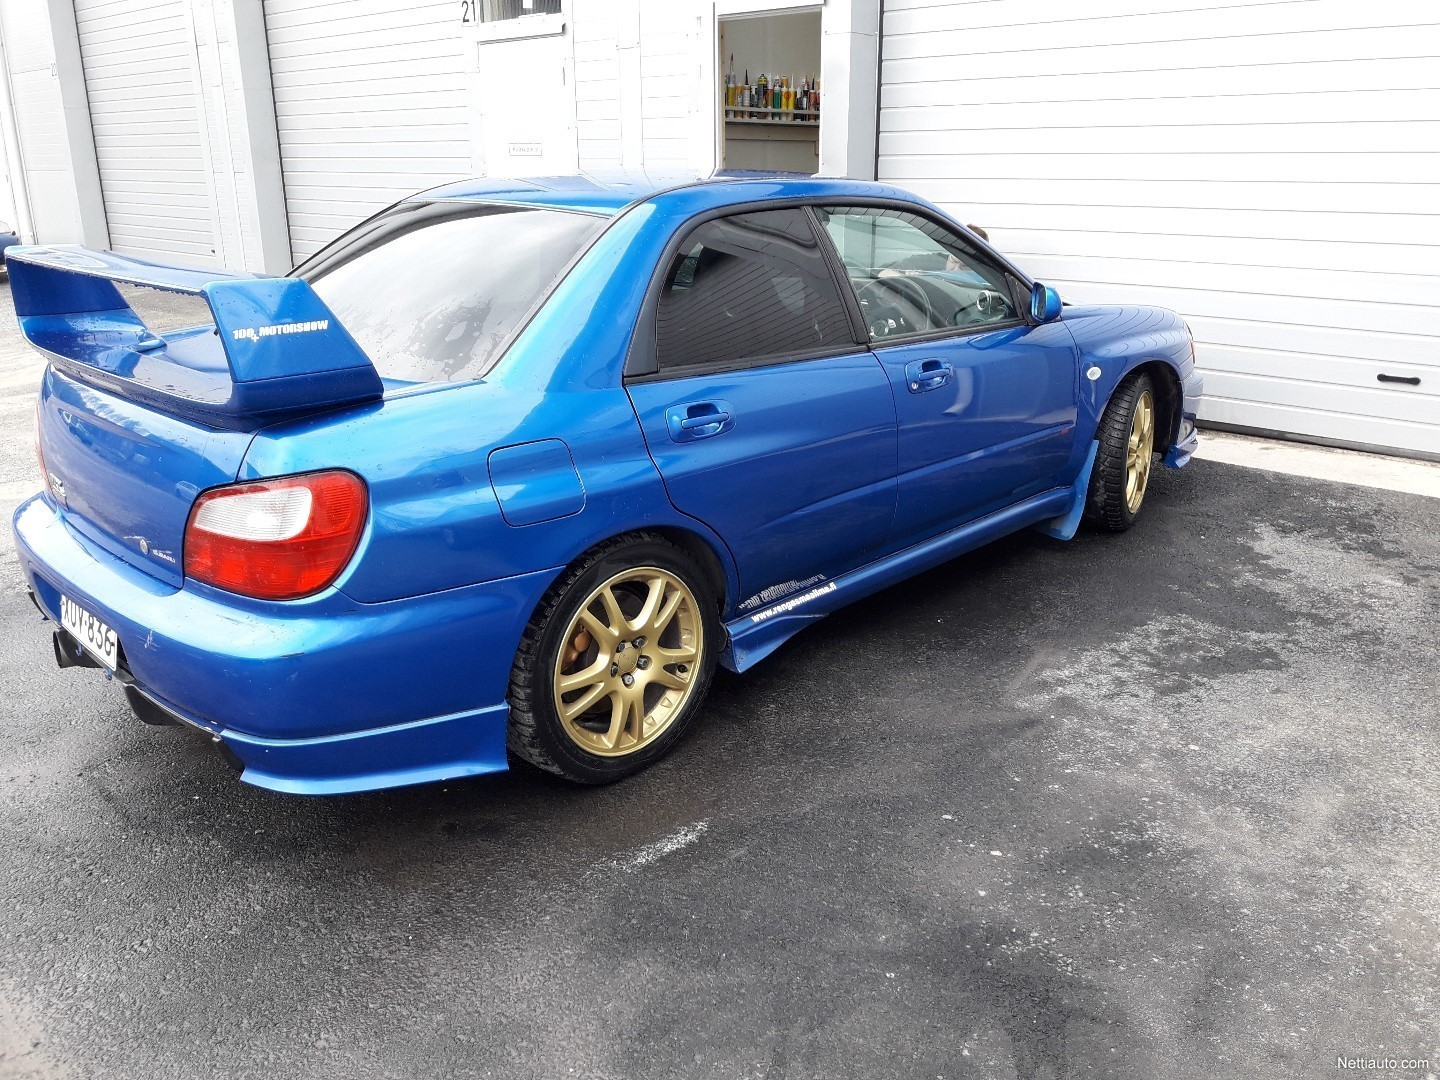 Impreza Wrx Sti >> Subaru Wrx Sti Sedan 2001 Used Vehicle Nettiauto